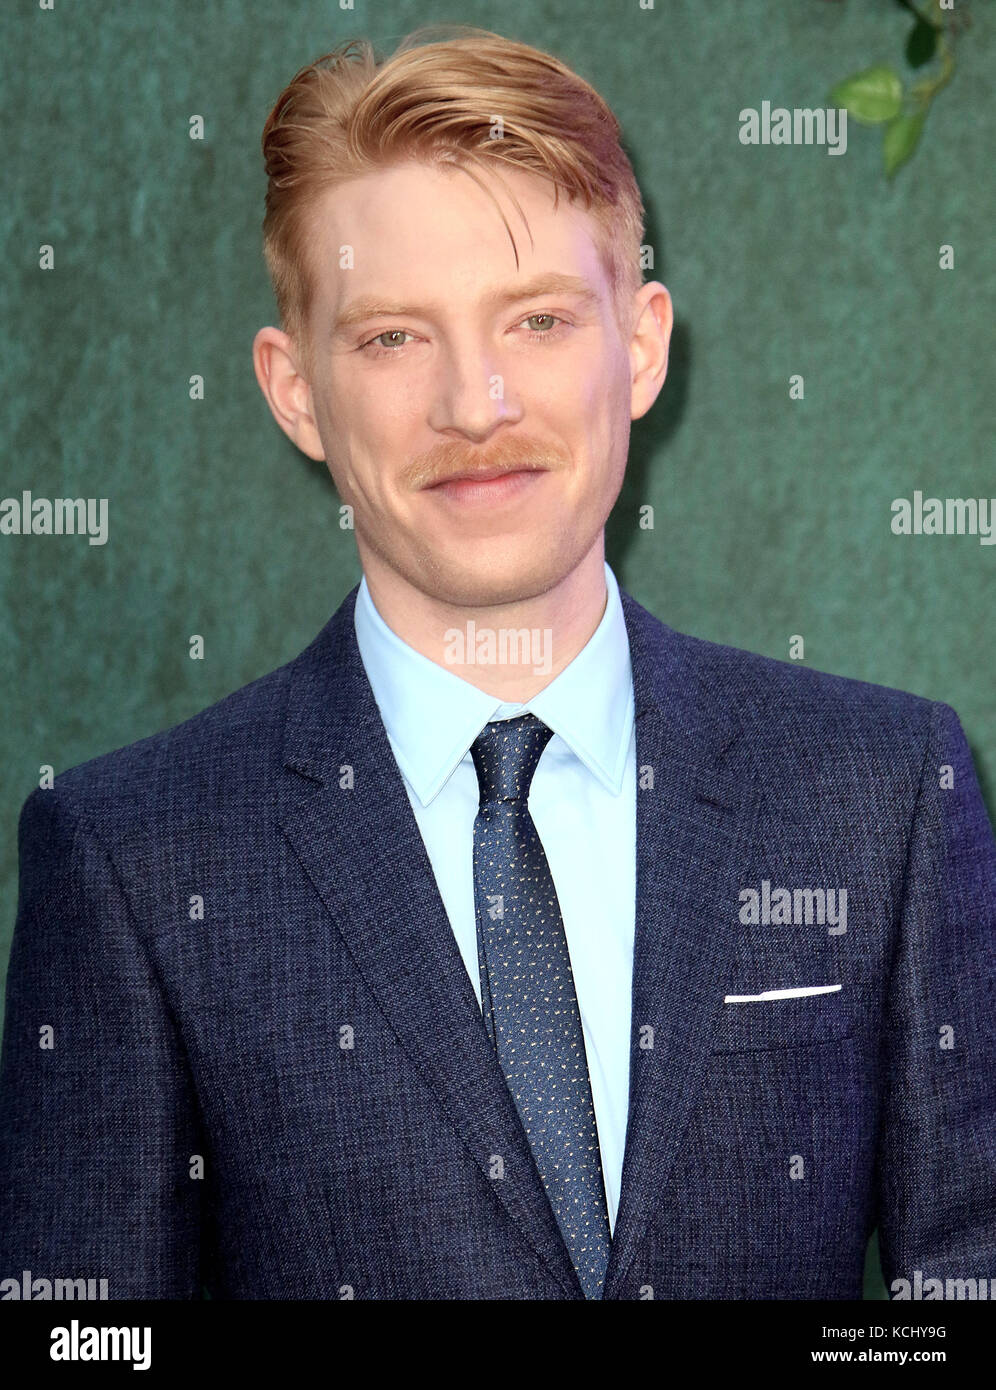 Sep 06, 2017 - Domhnall Gleeson attending 'Mother!' UK Premiere, Odeon Leicester Square in London, England, - Stock Image